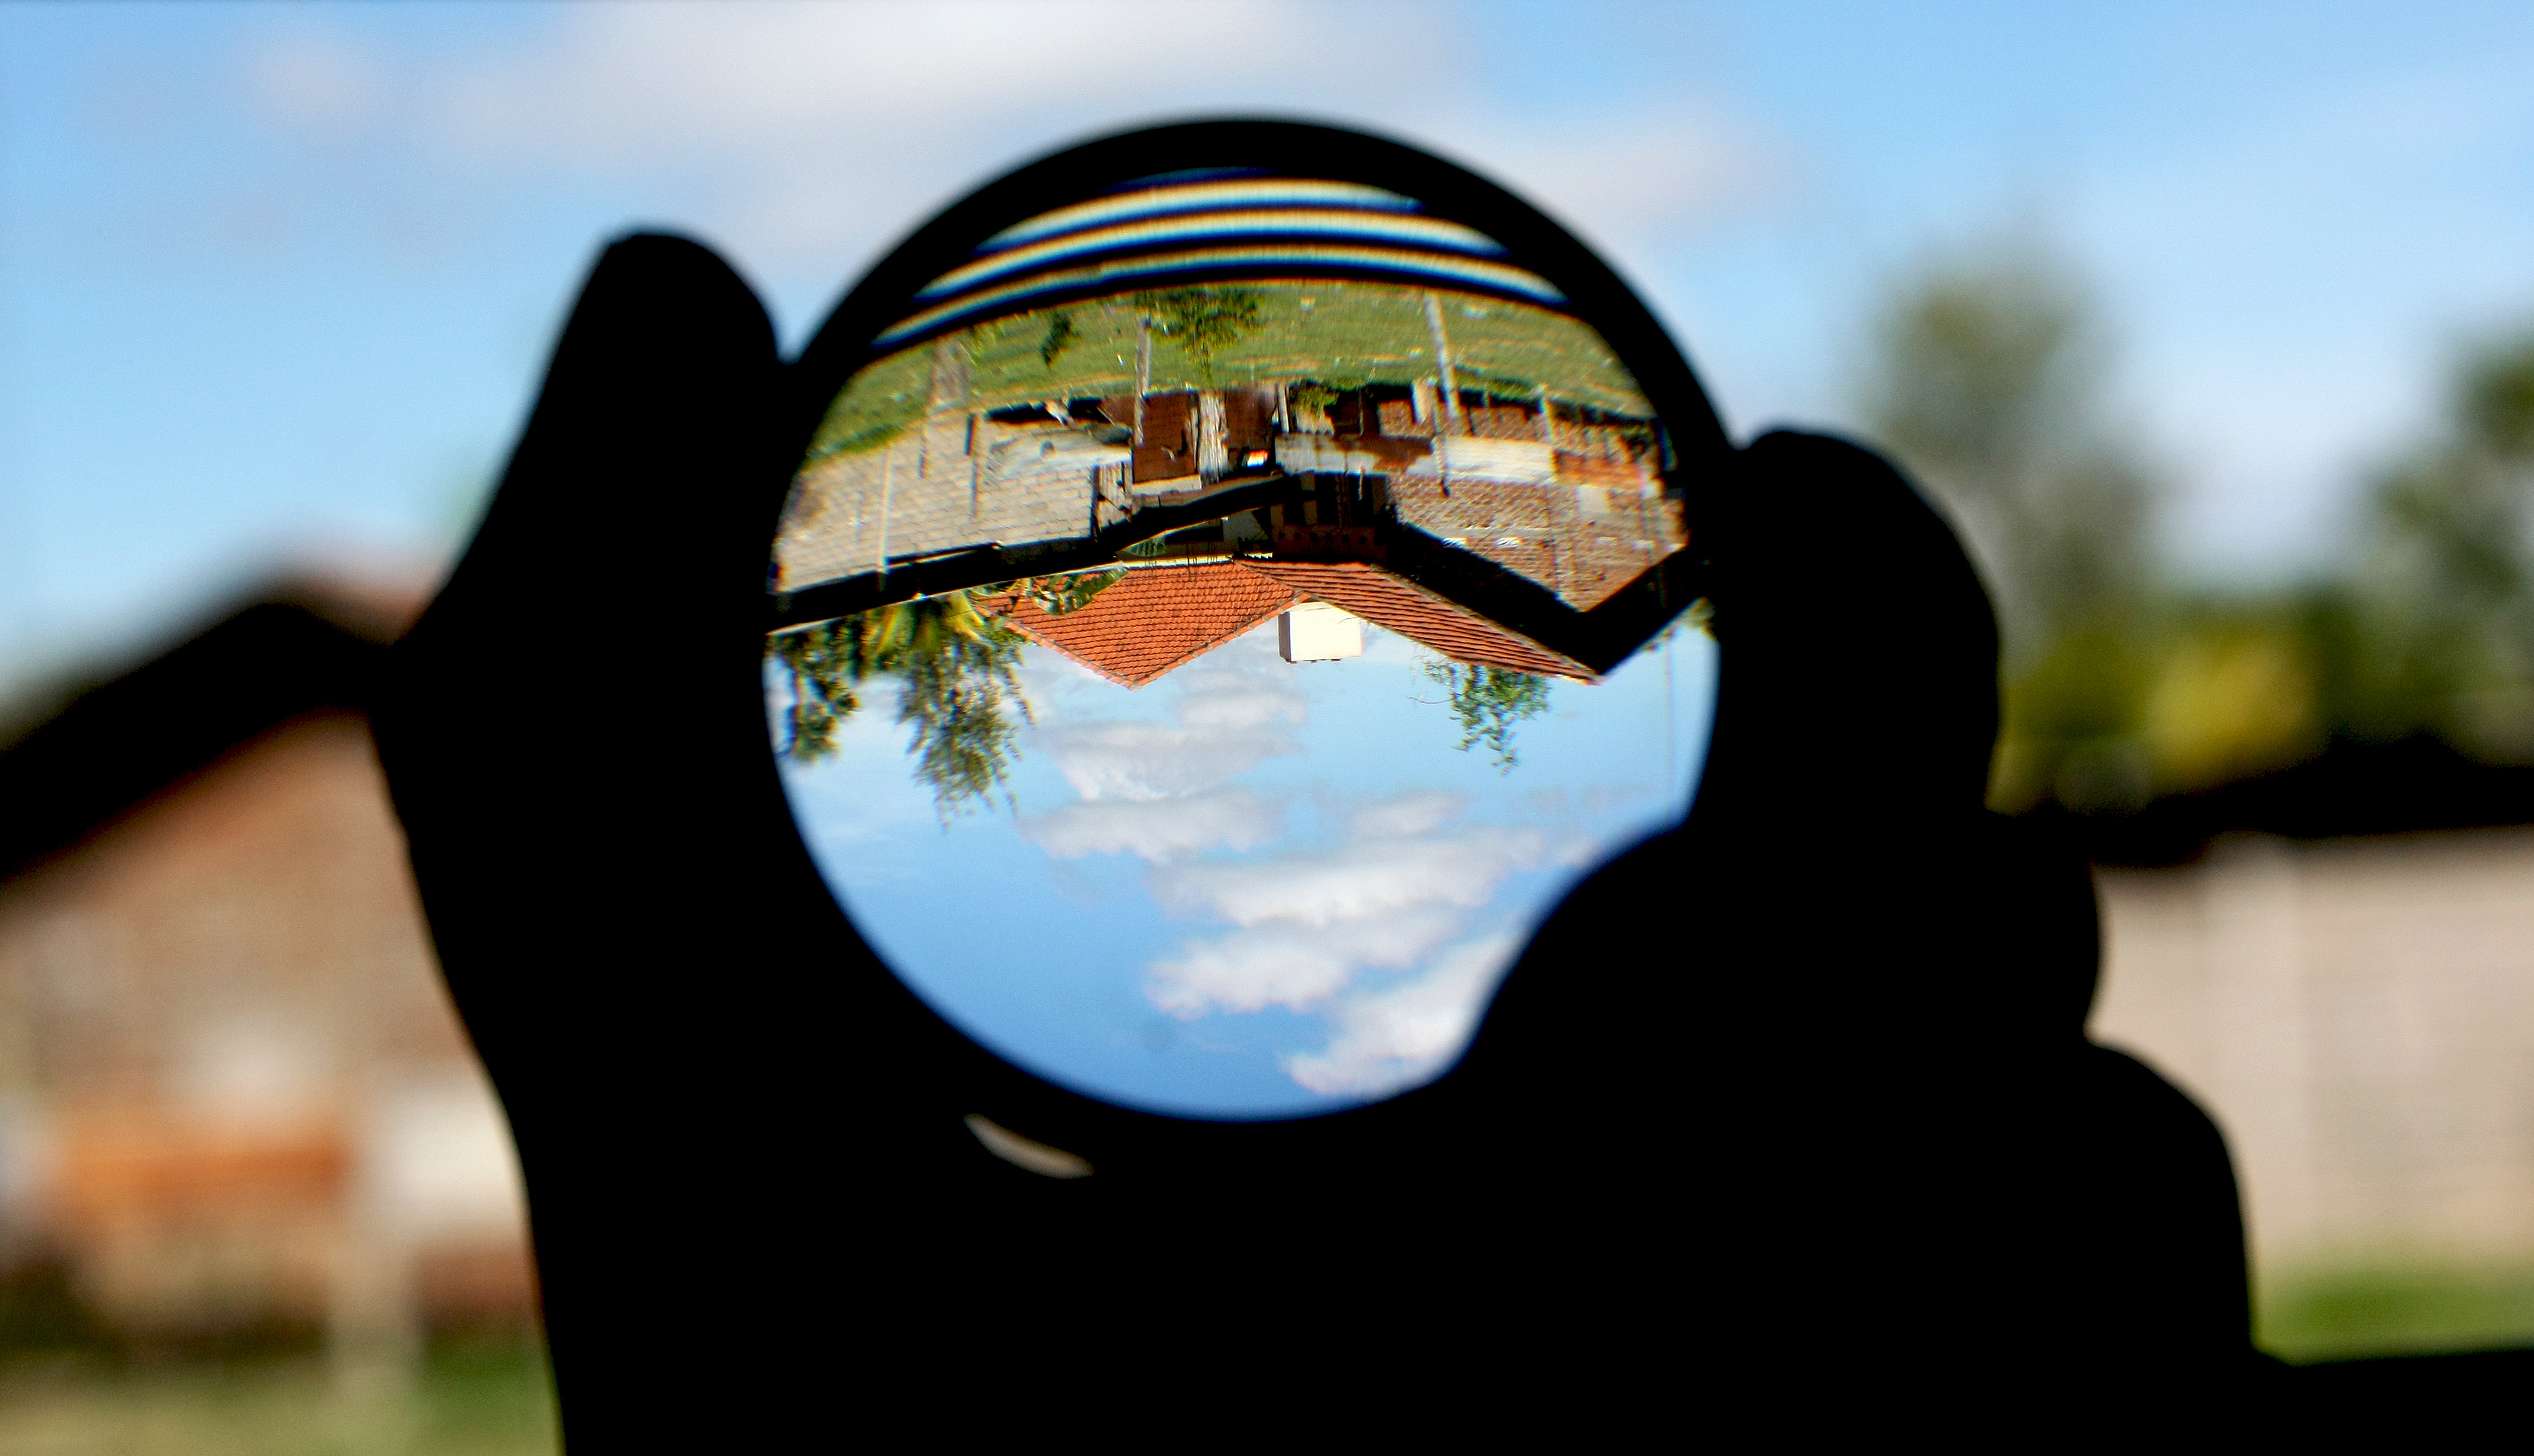 File Convex Lens Magnifying Glass And Upside Down Image